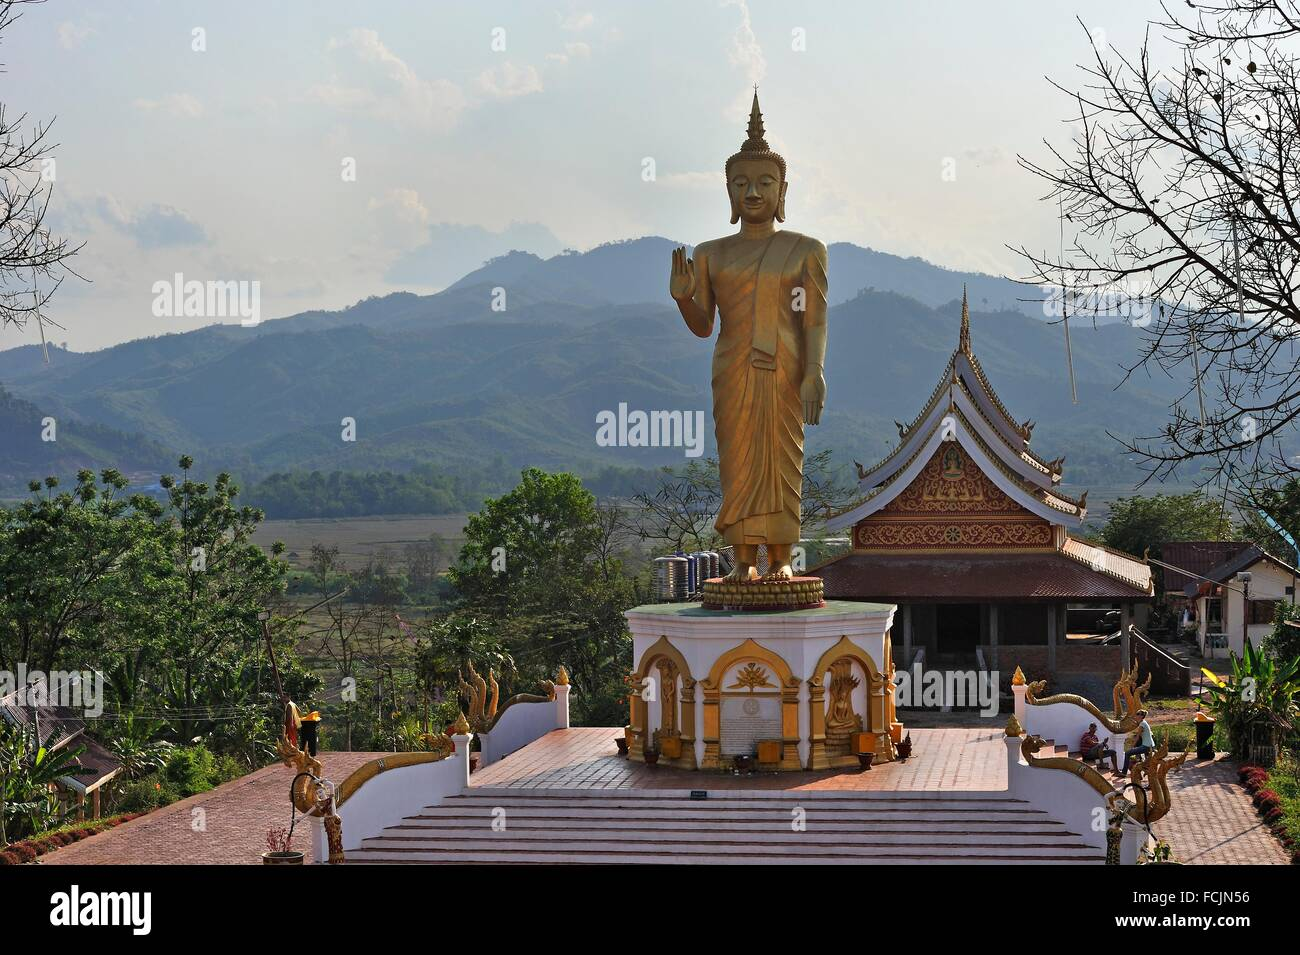 gilded Buddha´s statue at Wat Phu That temple, Udomxay, Oudomxay Province in northwestern Laos, Southeast Asia. - Stock Image